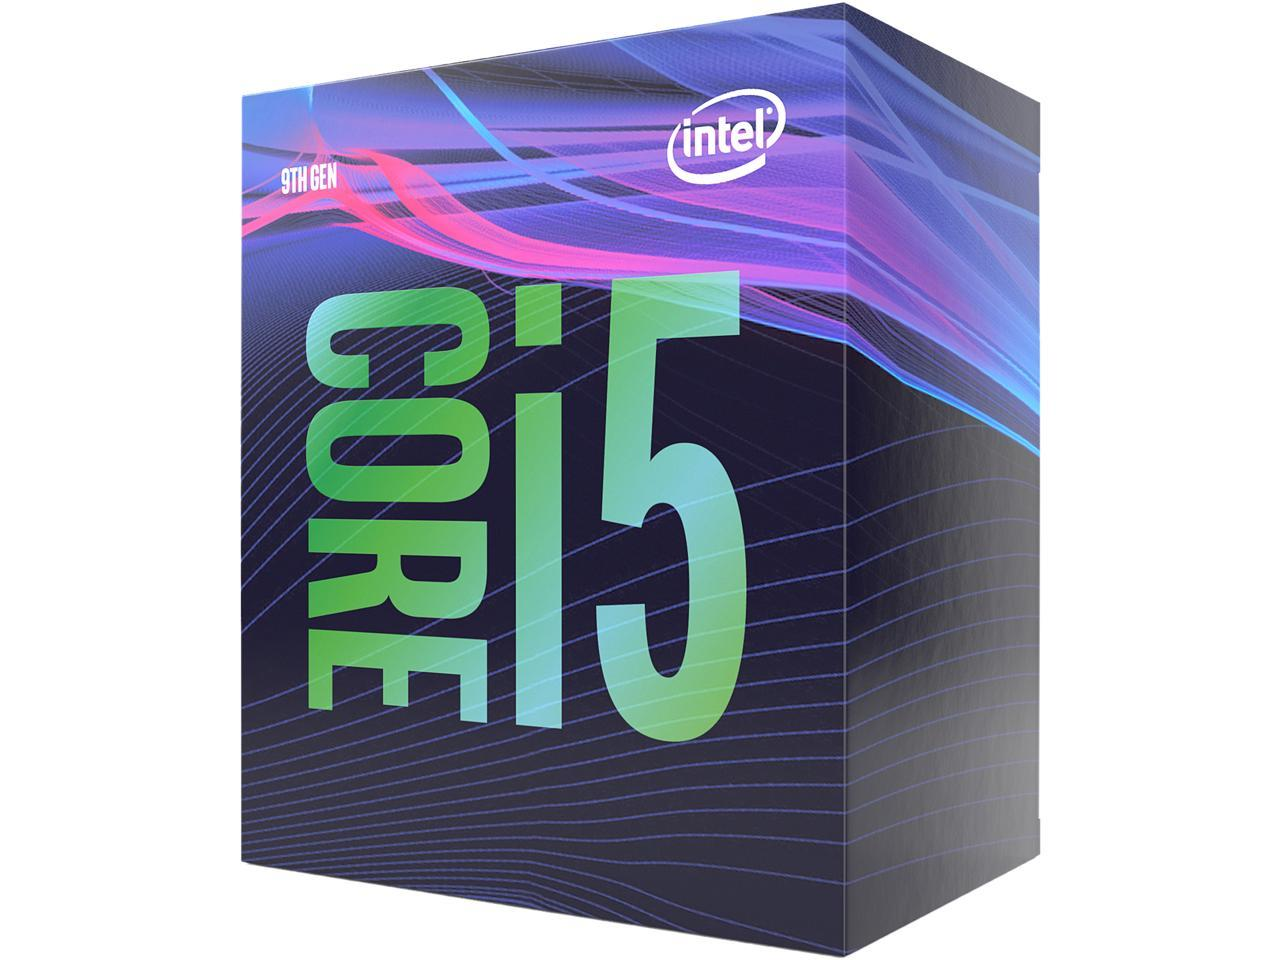 Intel 9th Generation Core i5-9400 CPU (Coffee Lake, 6/6 Cores/Threads, 2.9GHz Base, 4.1GHz Boost, Socket LGA 1151 (300 Series), 65W TDP Desktop Processor), Model BX80684I59400